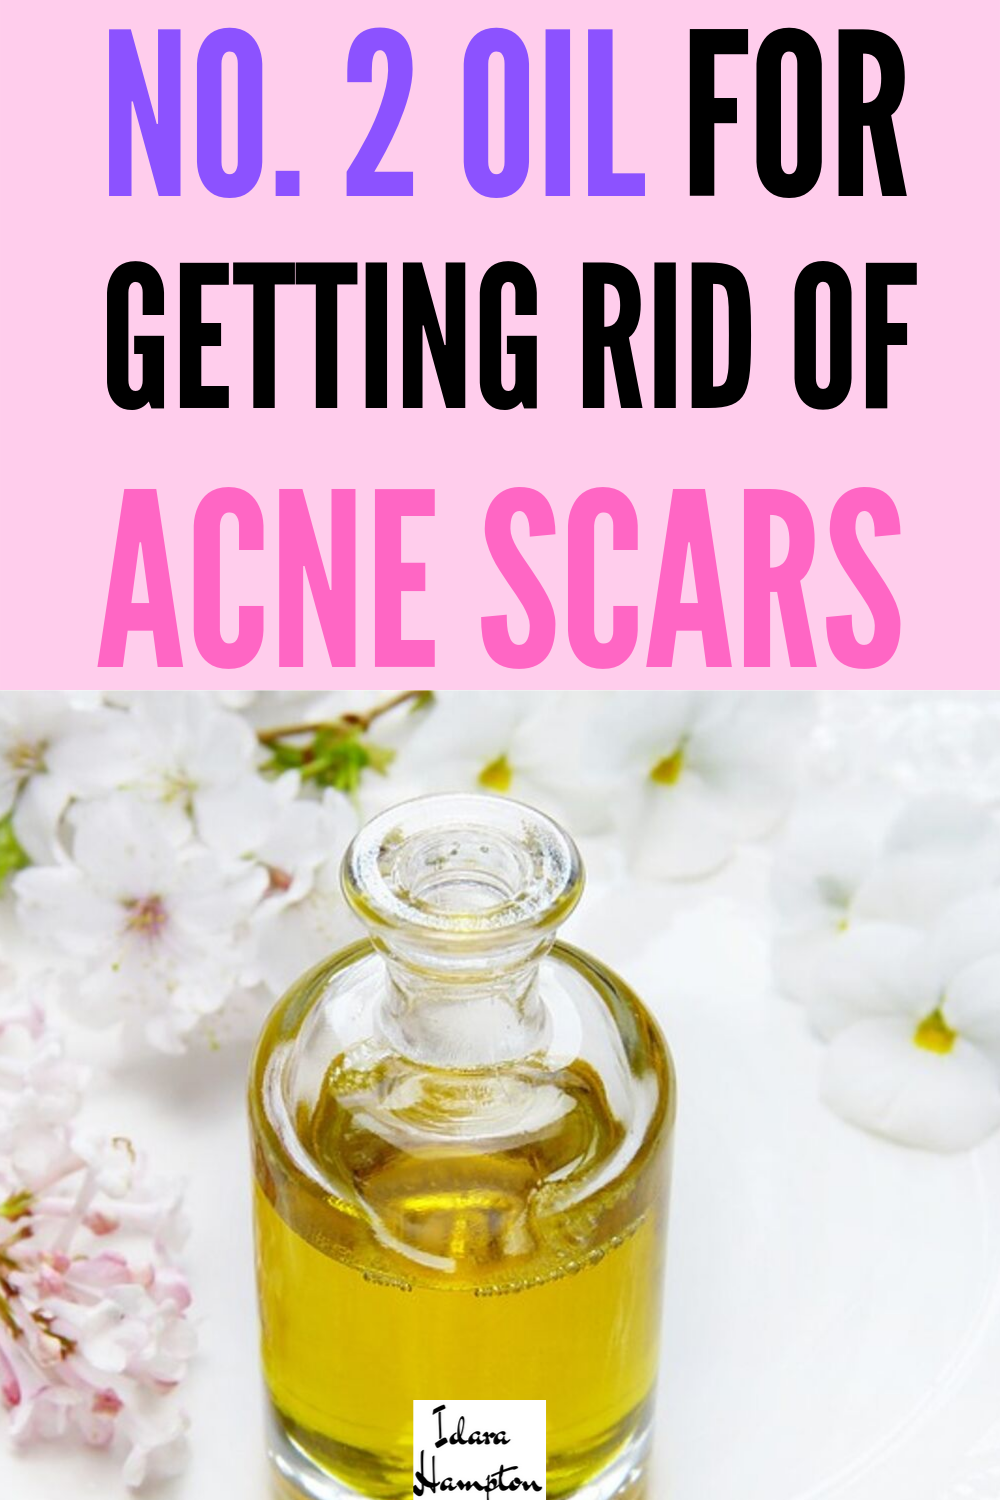 Pin on Beauty Tips + Ingredients